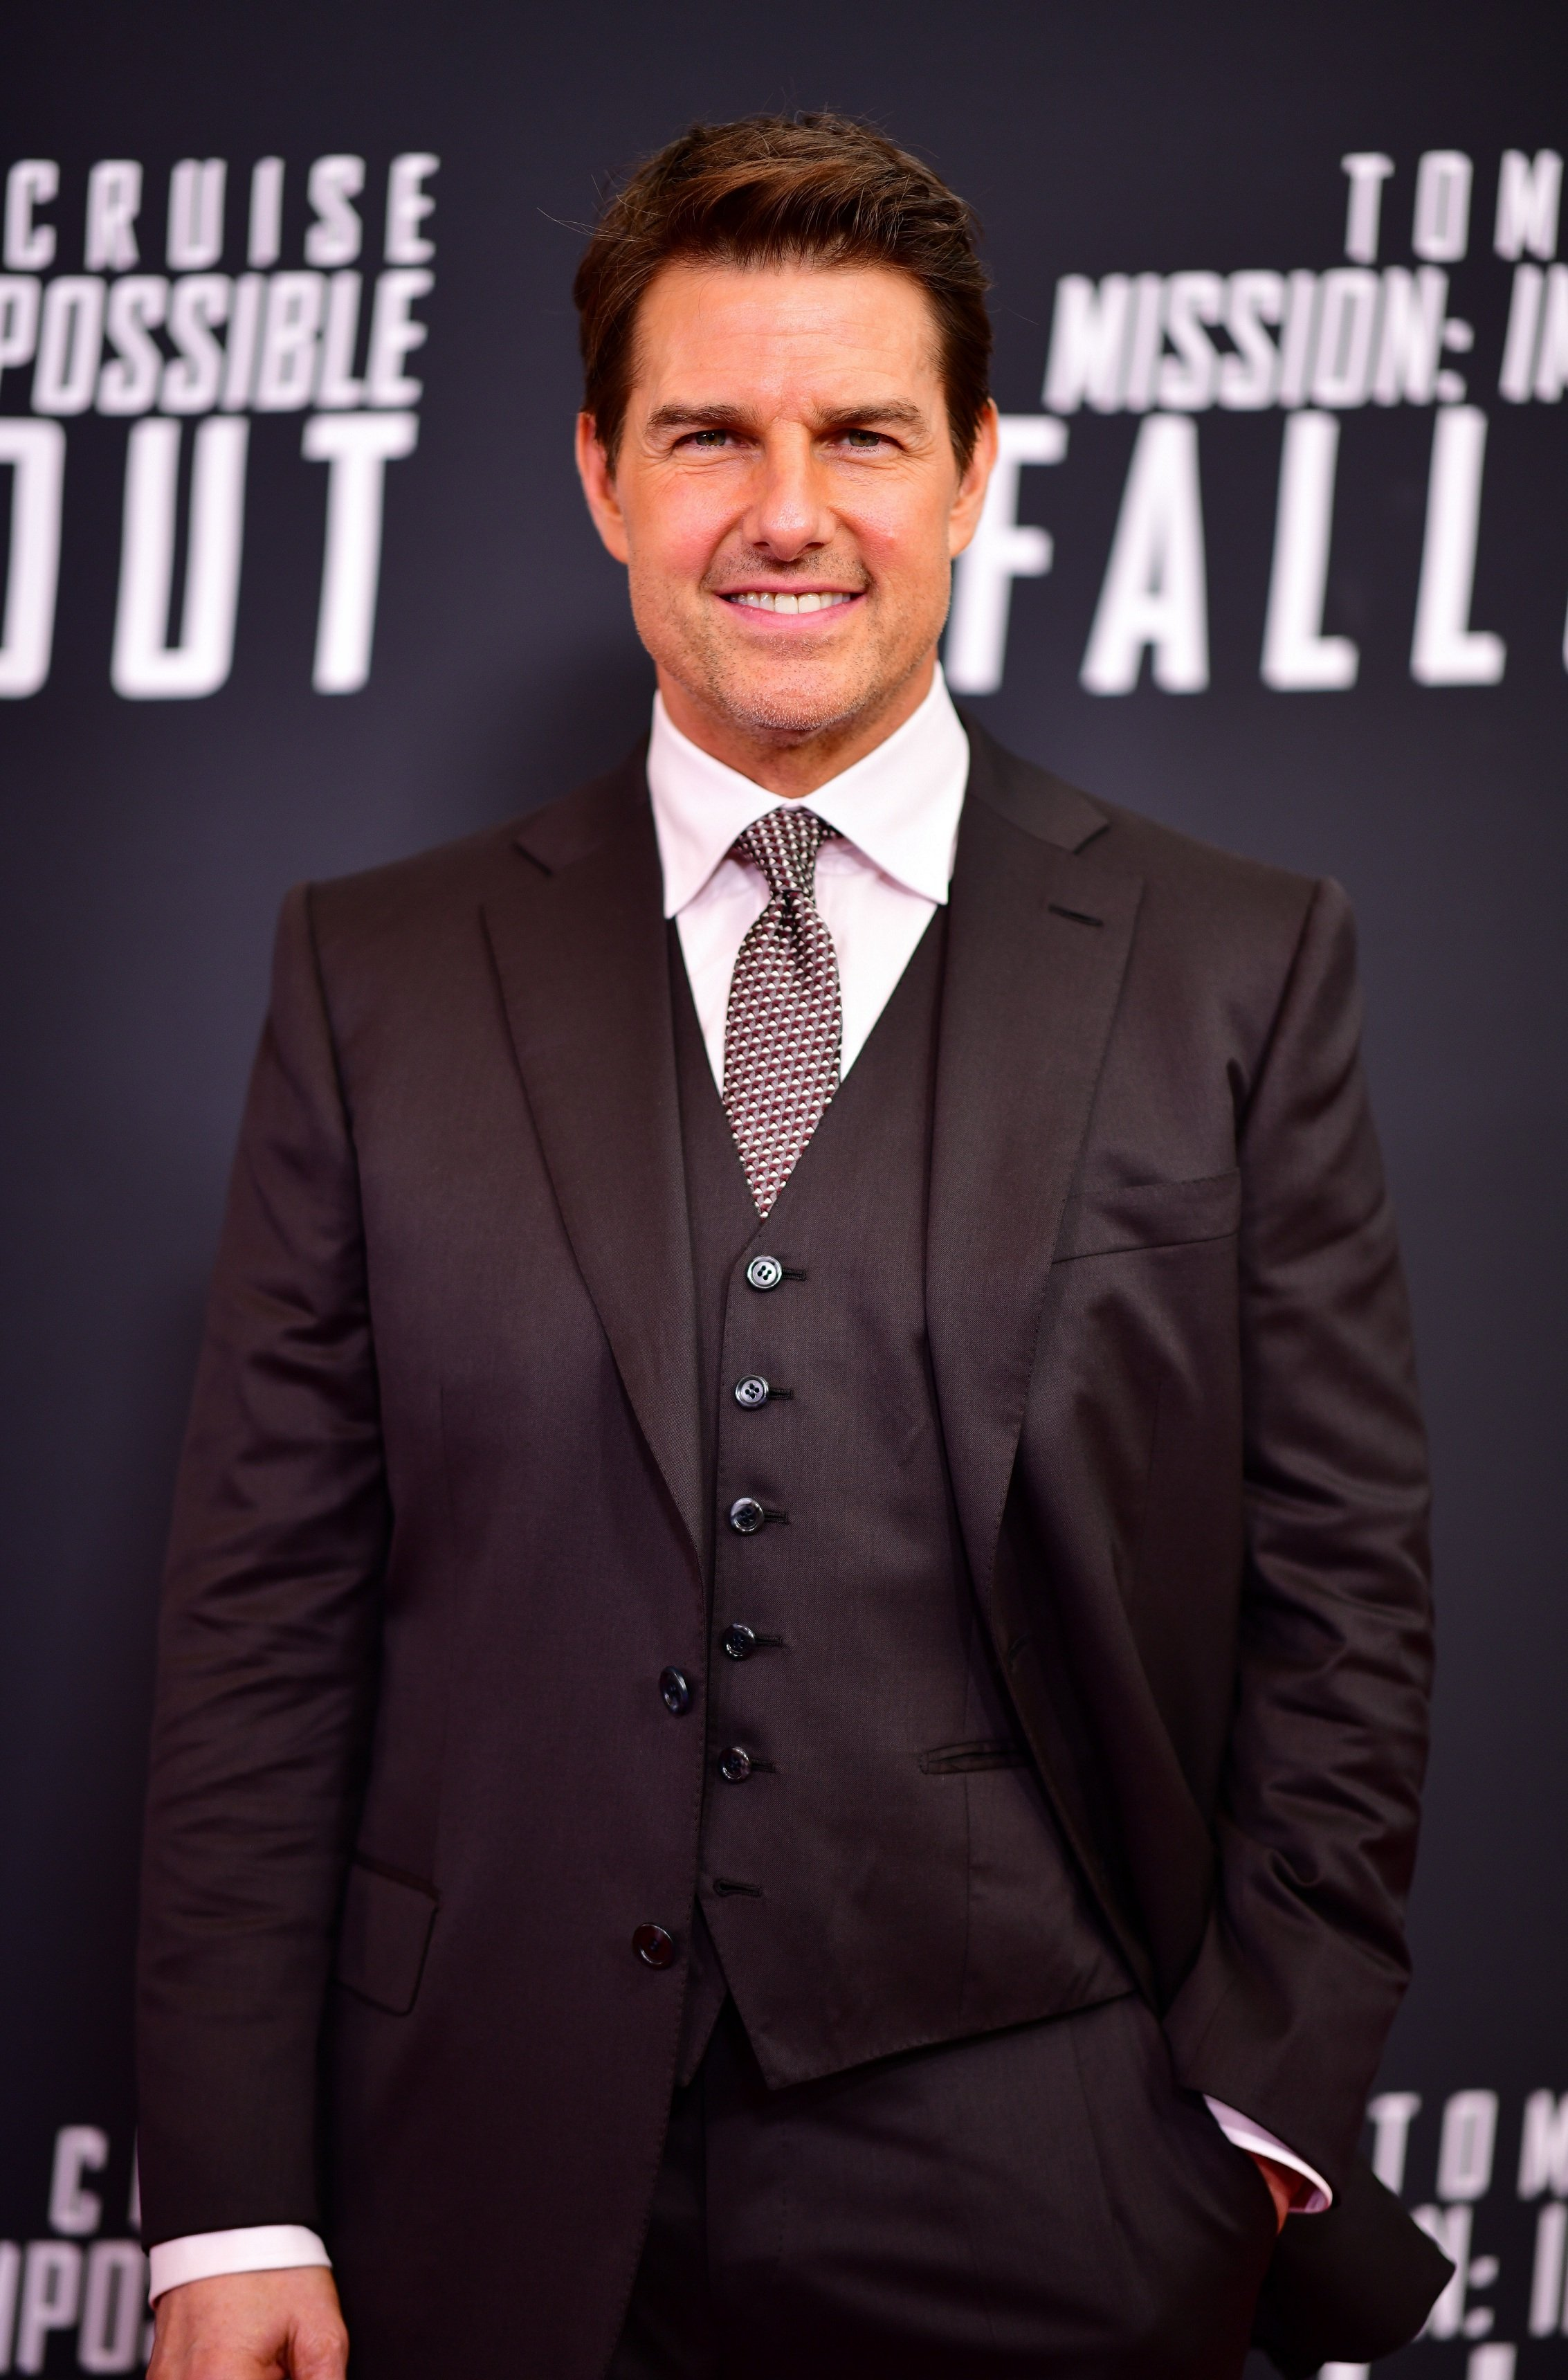 Tom Cruise attends the 'Mission: Impossible - Fallout' U.S. Premiere on July 22, 2018, in Washington, D.C.   Source: Getty Images.